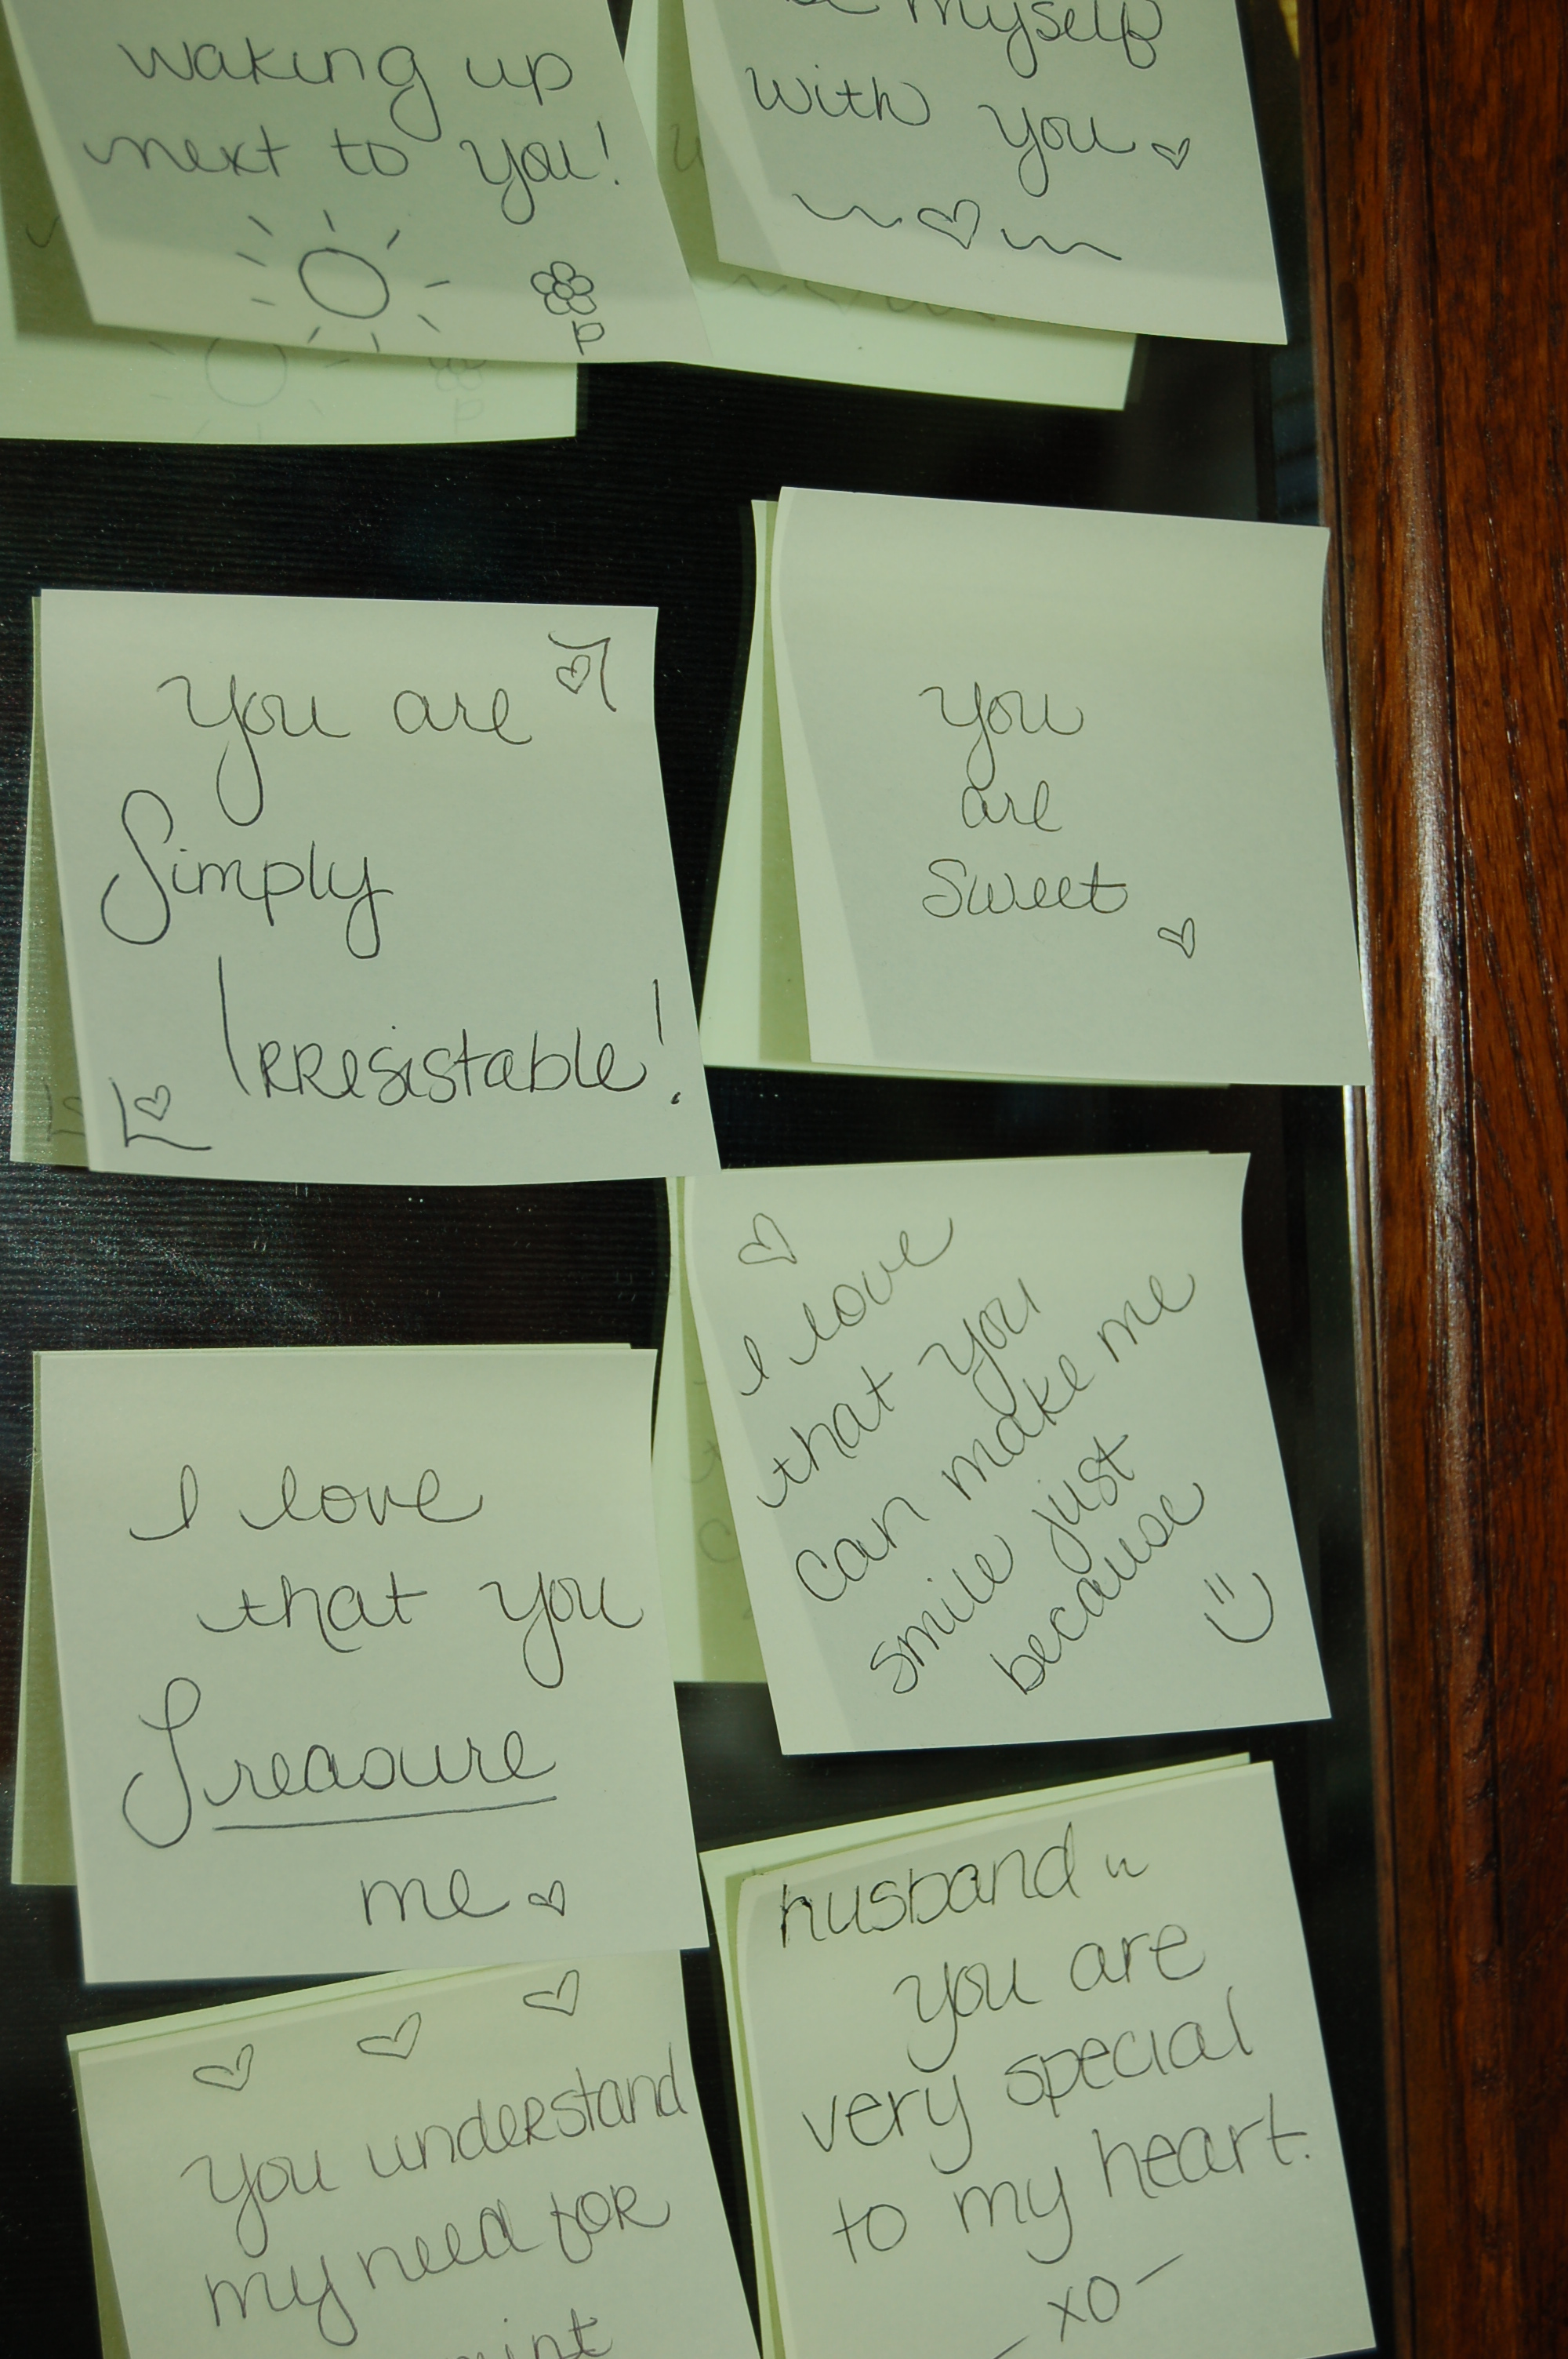 Funny Love Notes For Husband : funny, notes, husband, Little, Notes~, Coffee